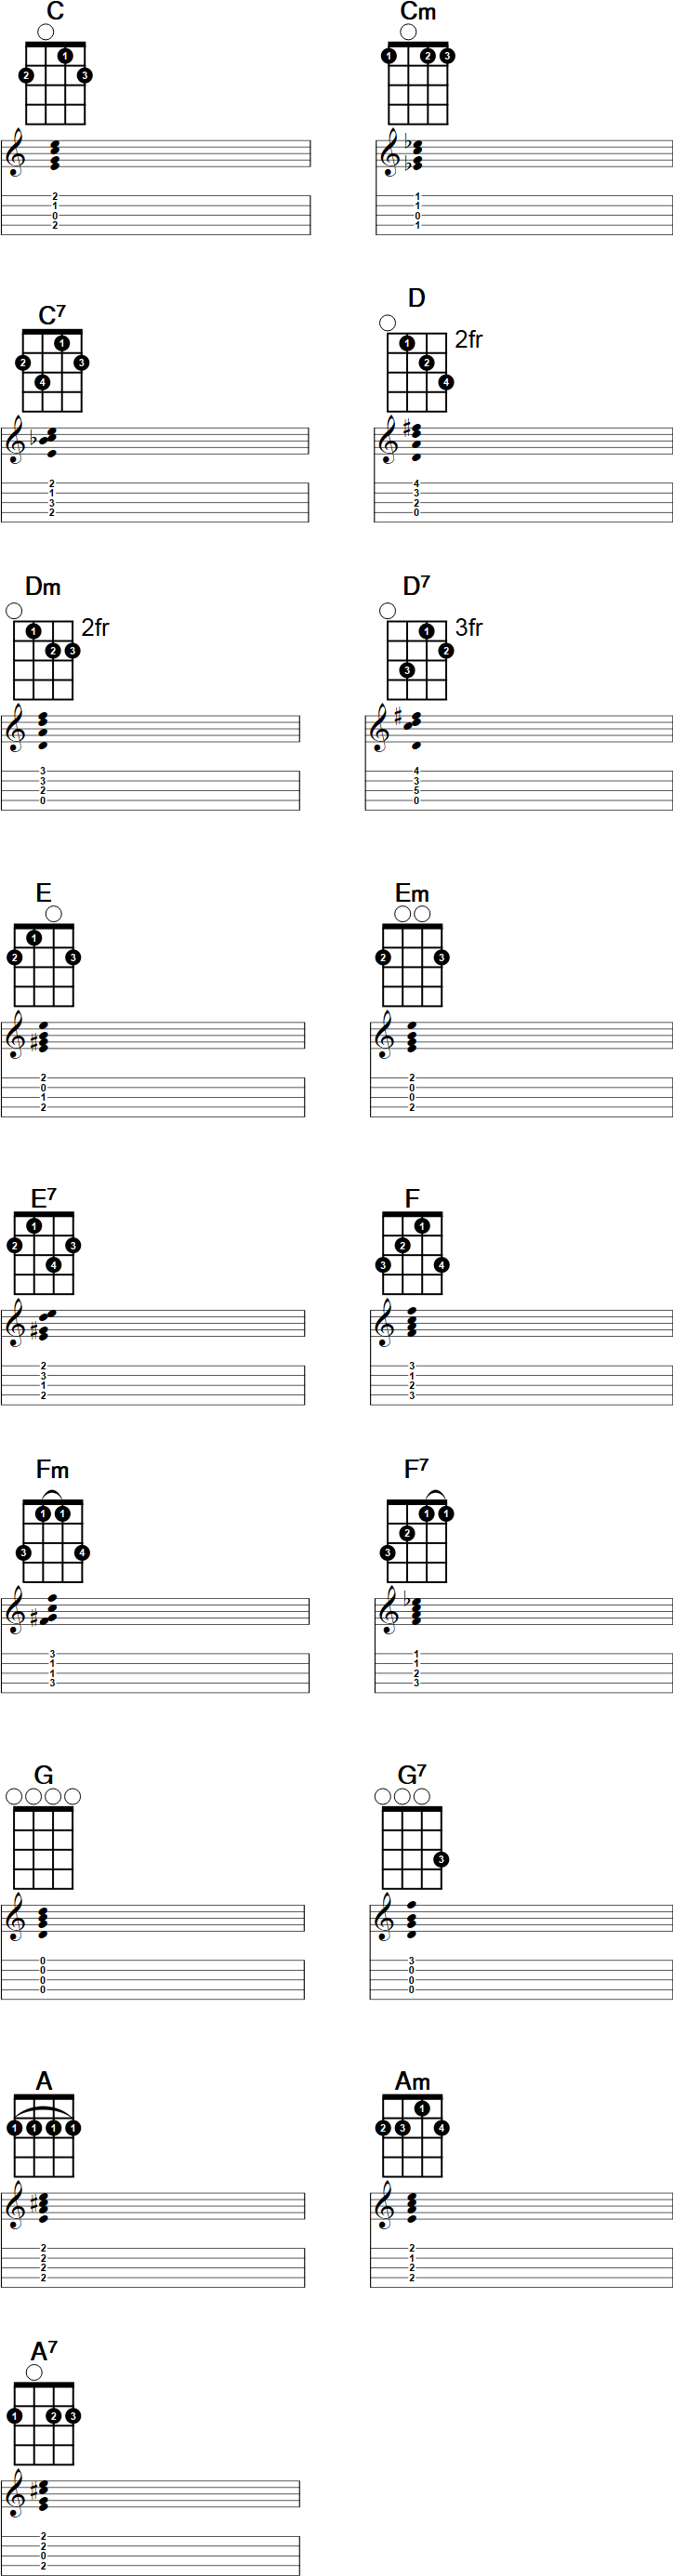 Easy Banjo Chords Printable Pdf Download At Httpbanjochords